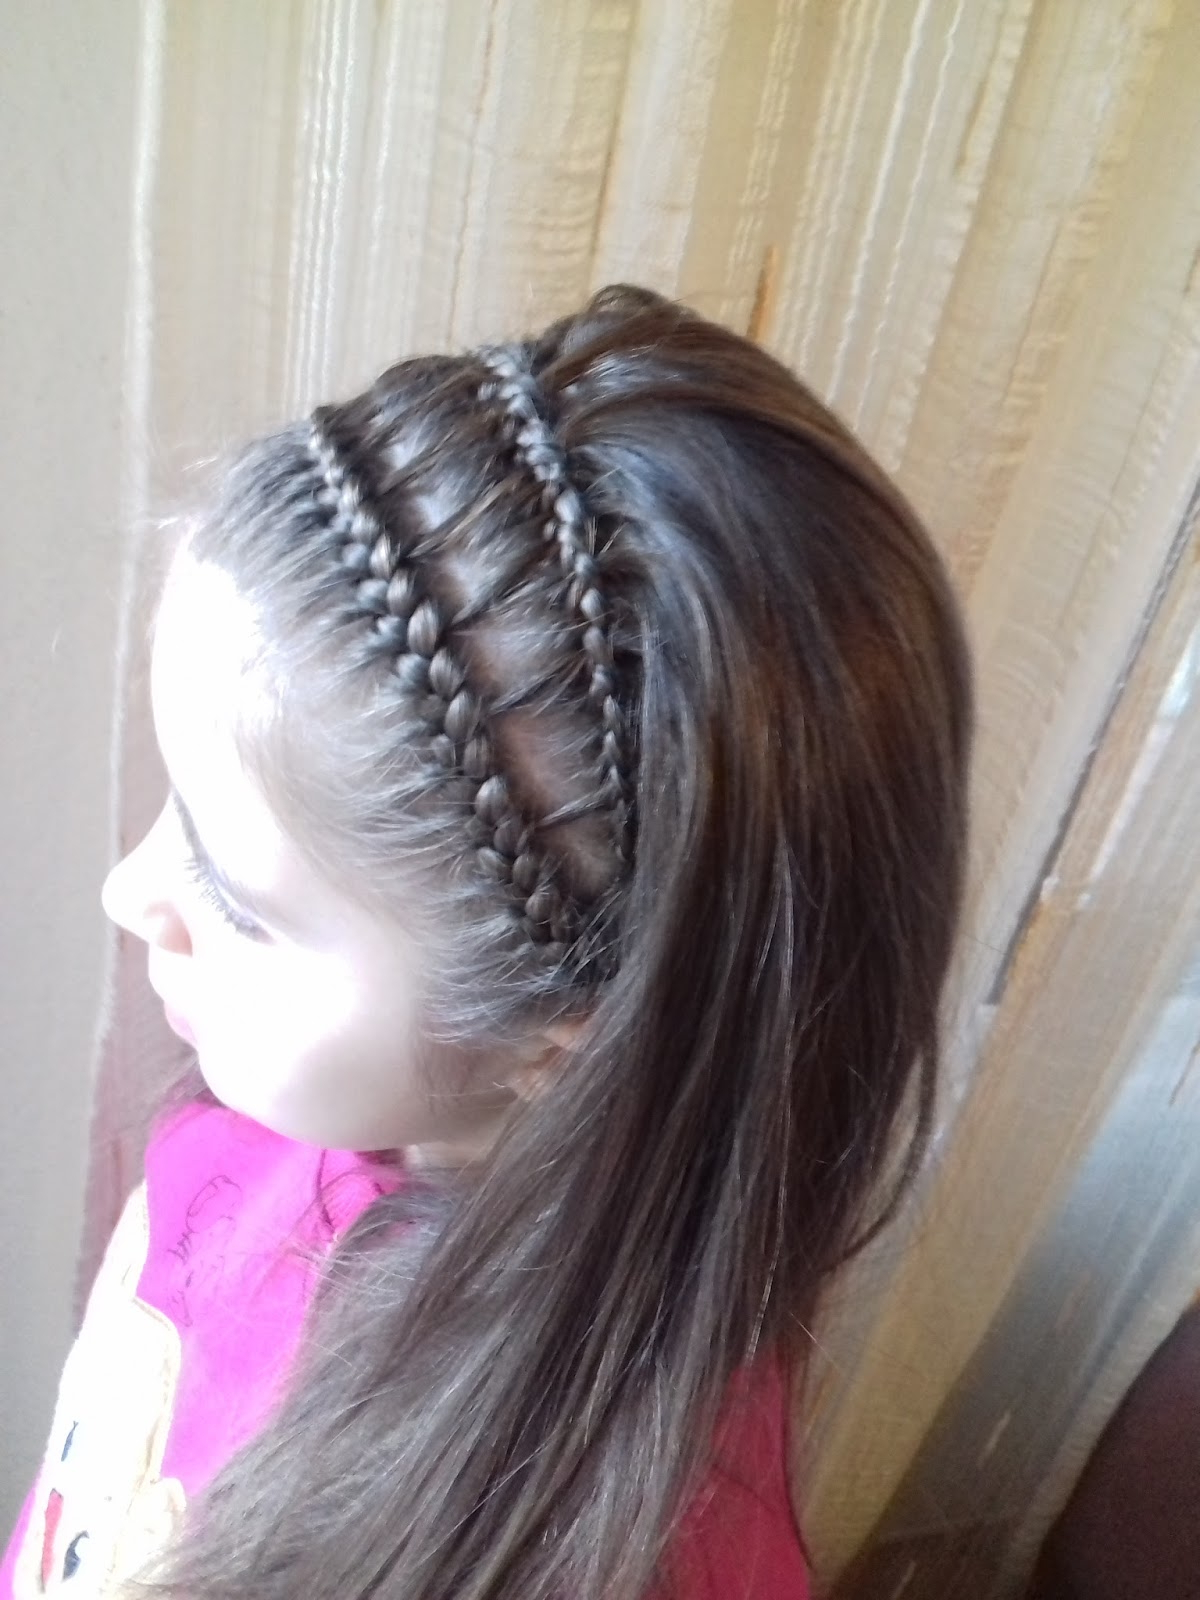 Well Liked Corset Braid Hairstyles Throughout Fashionable Hair Braids: Few Ways Of Corset Braiding (Gallery 18 of 20)